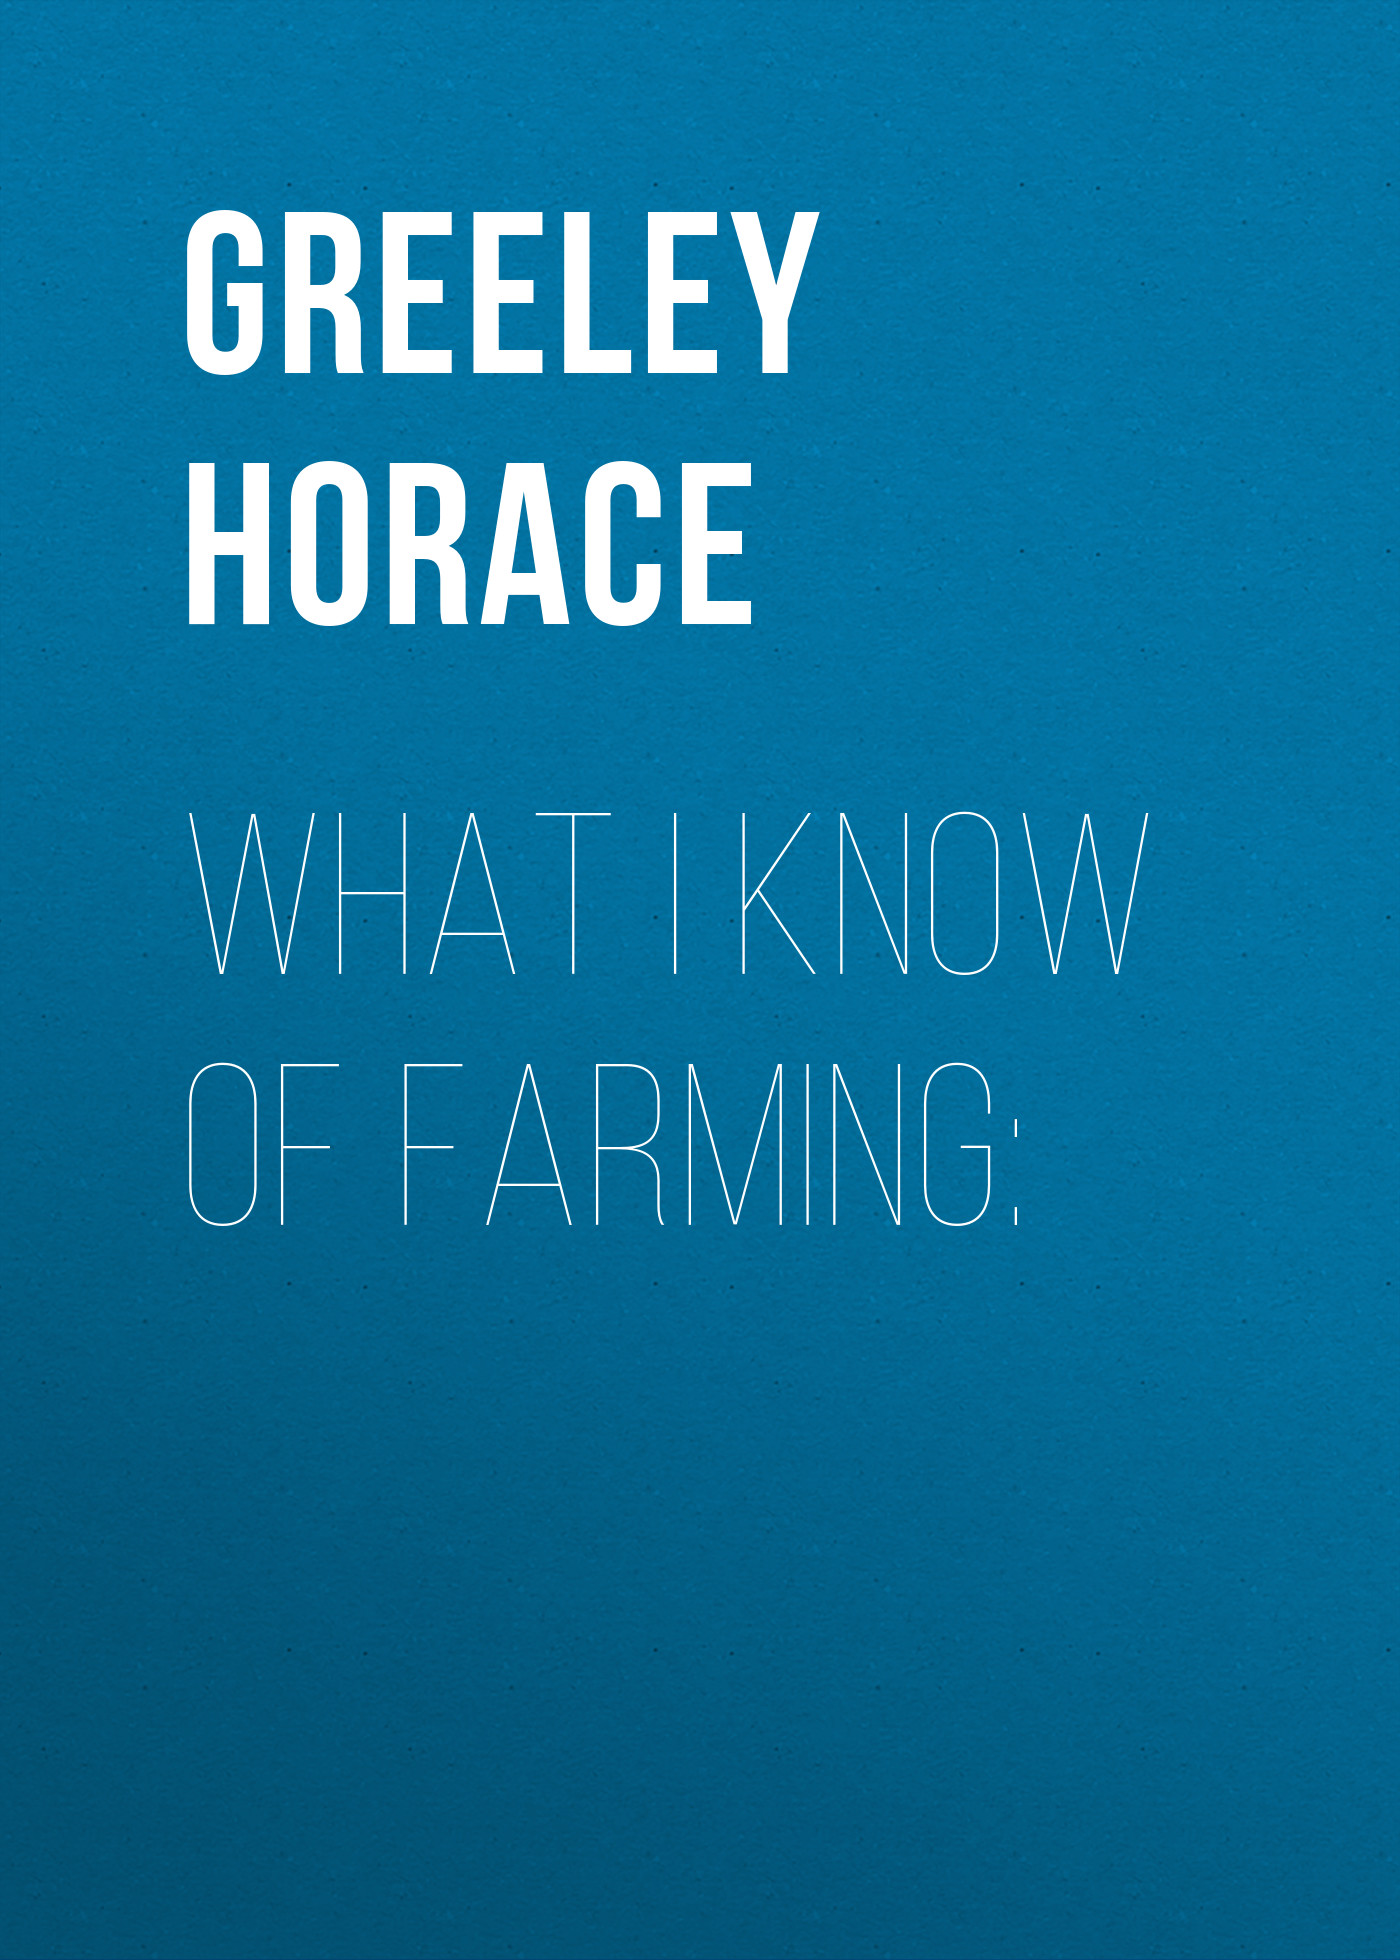 Greeley Horace What I know of farming: arthur l clark bosnia what every american should know